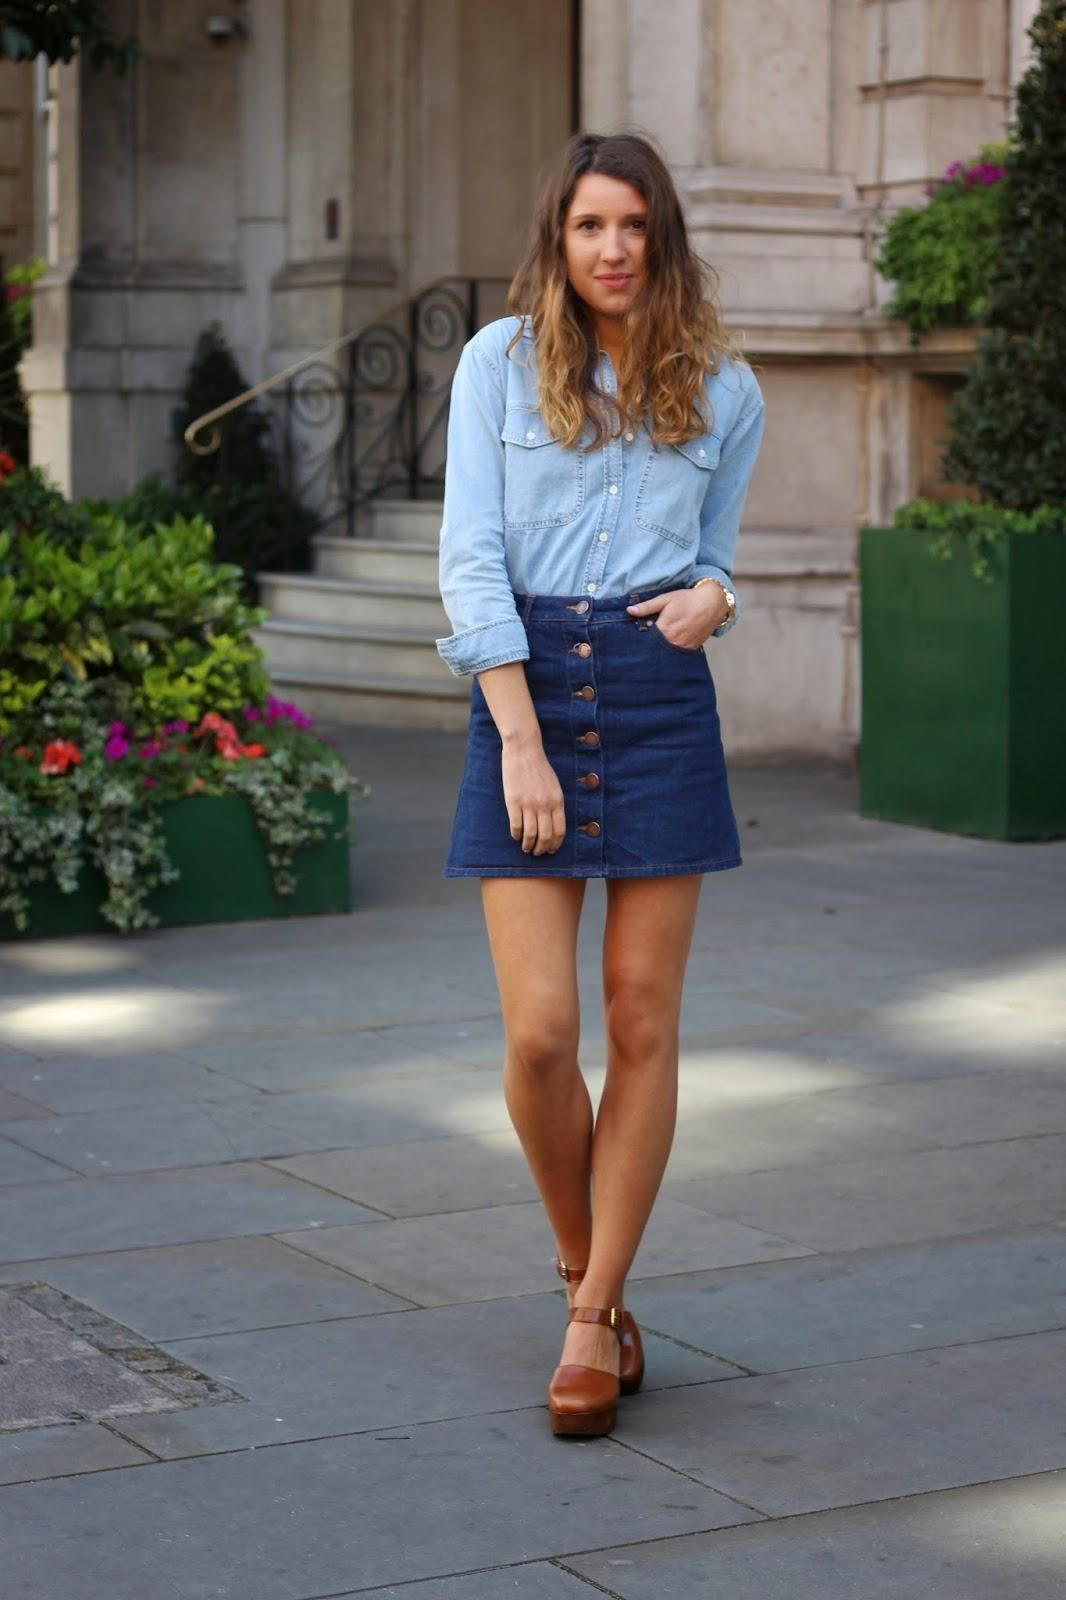 20 Modern Ways to Style a Denim Skirt for Spring | Spring, Skirts ...